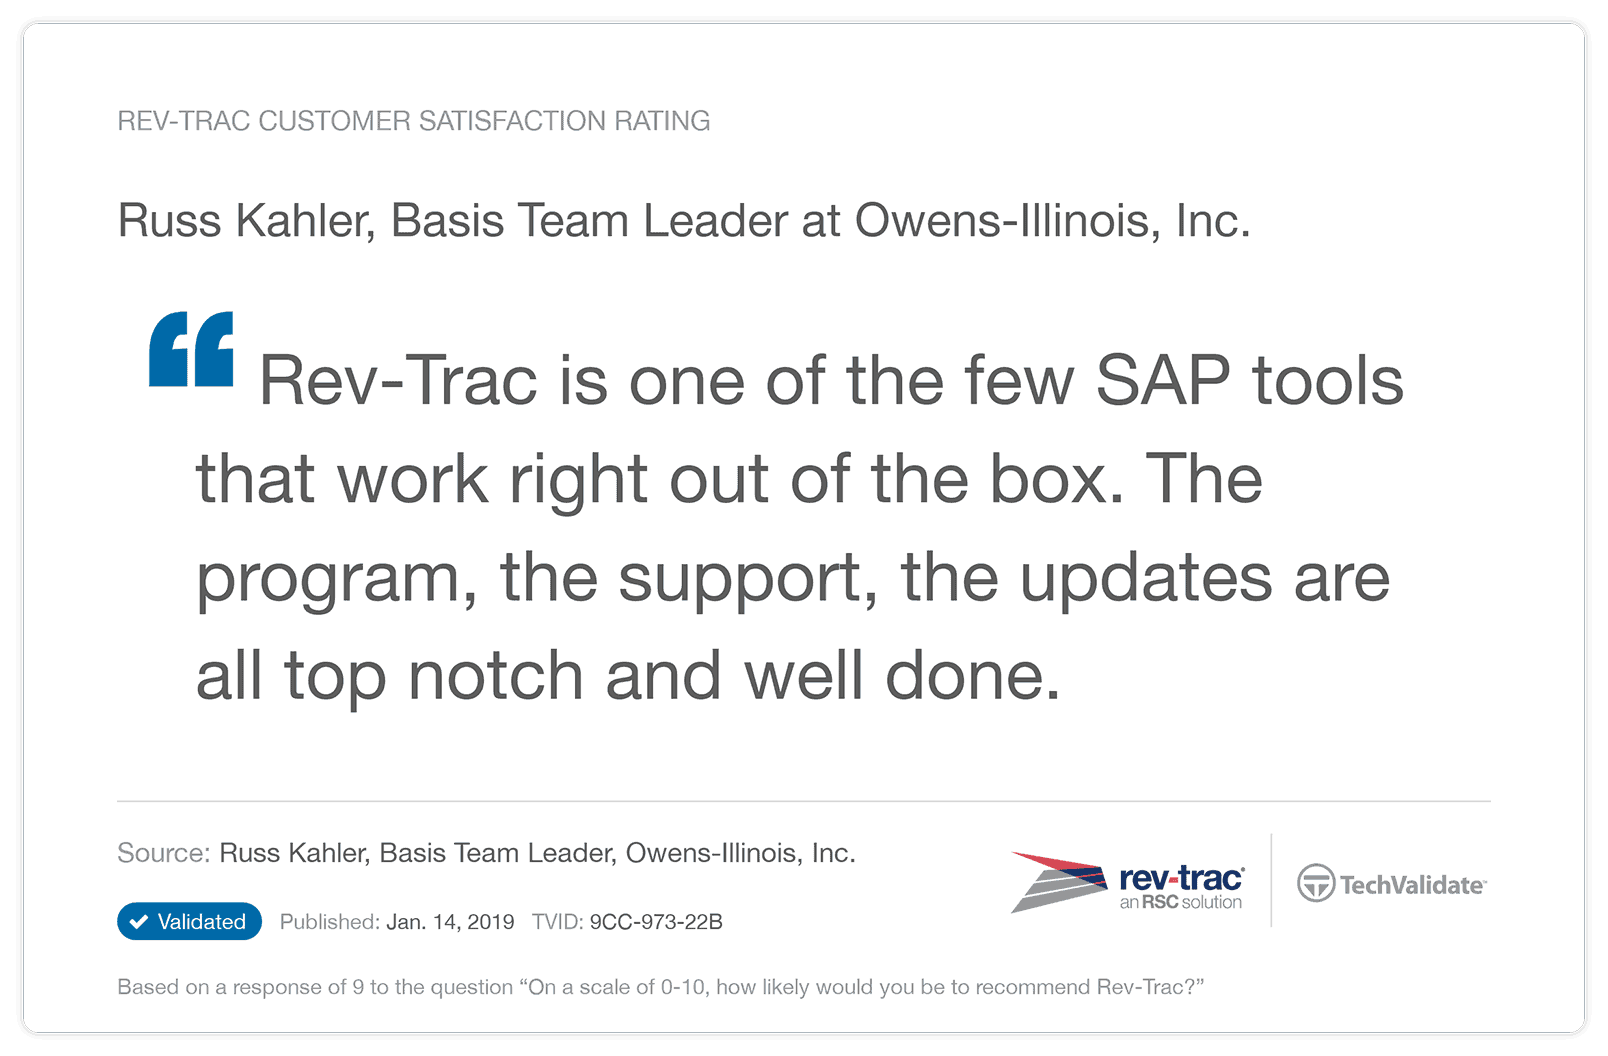 Rev-Trac is one of the few SAP tools that work right out of the box.